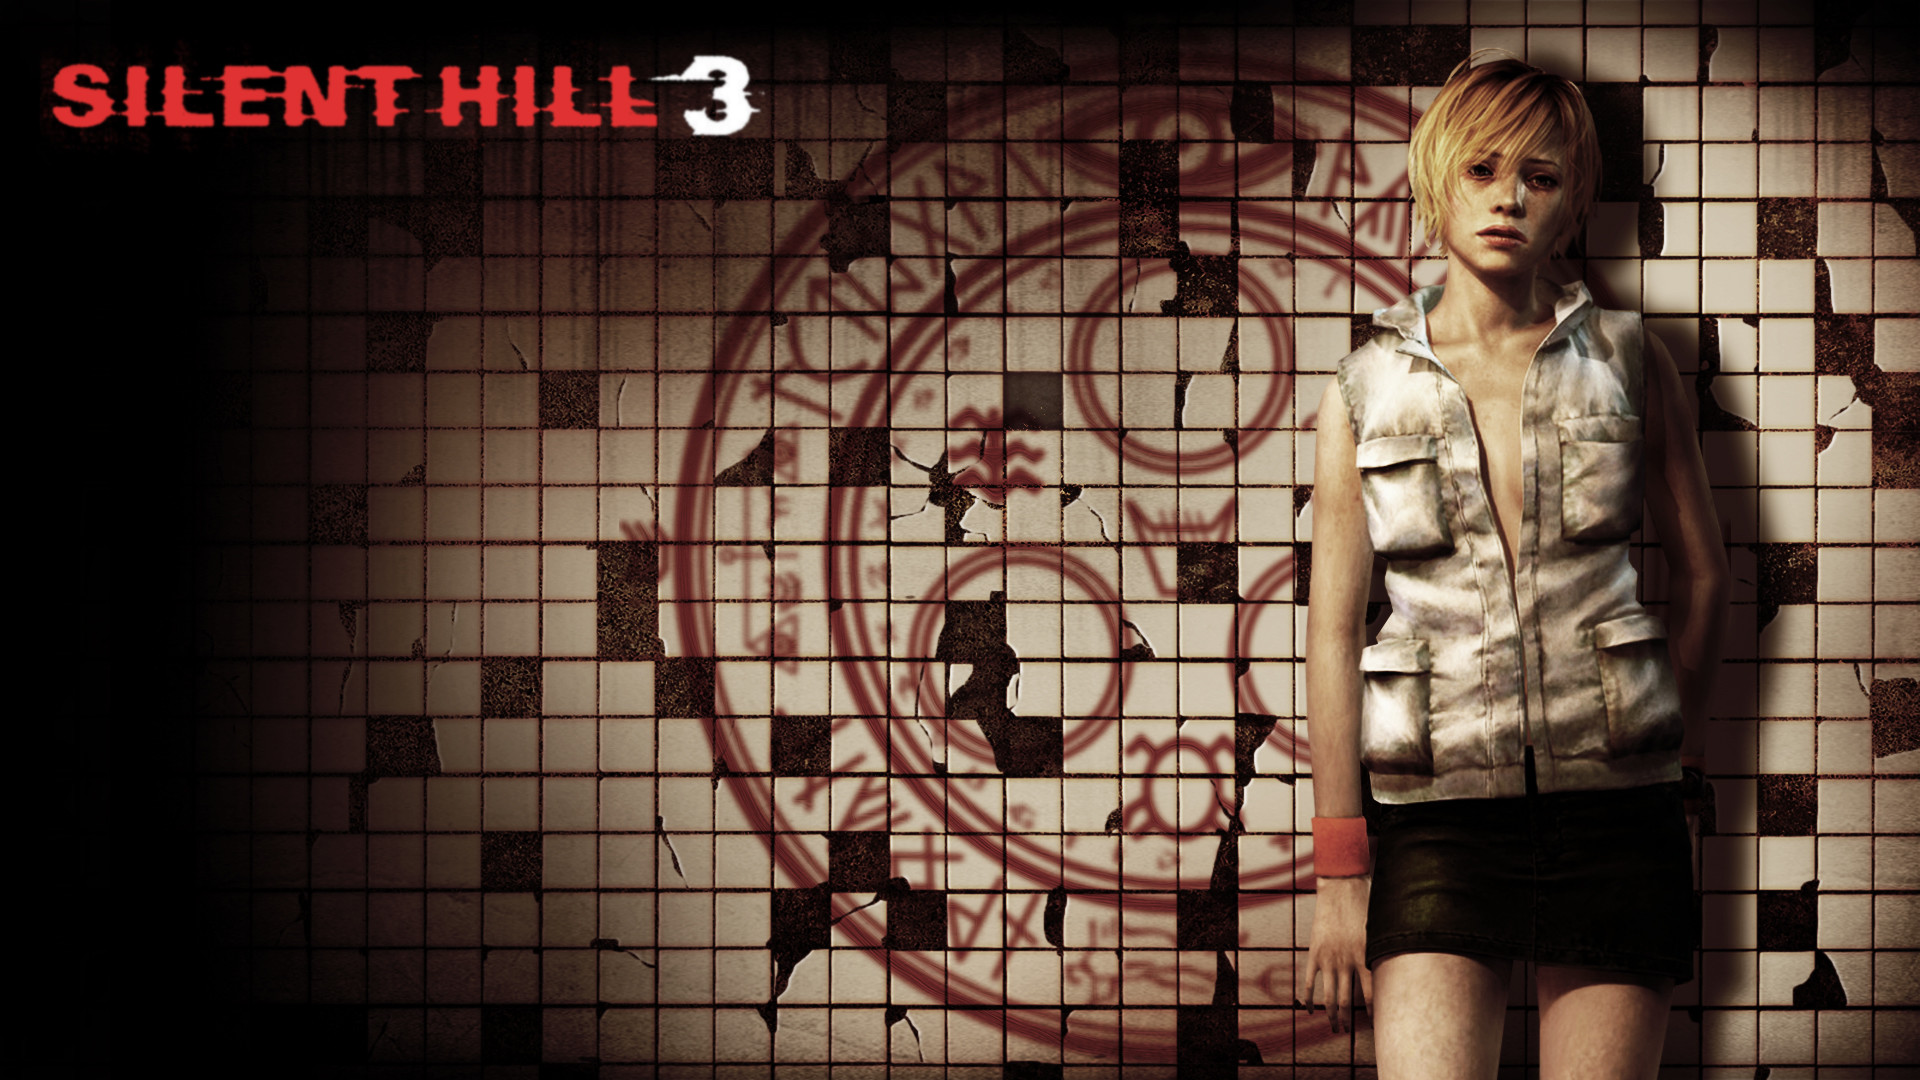 1920x1080 Silent Hill 3 Wallpapers - Wallpaper Cave ...